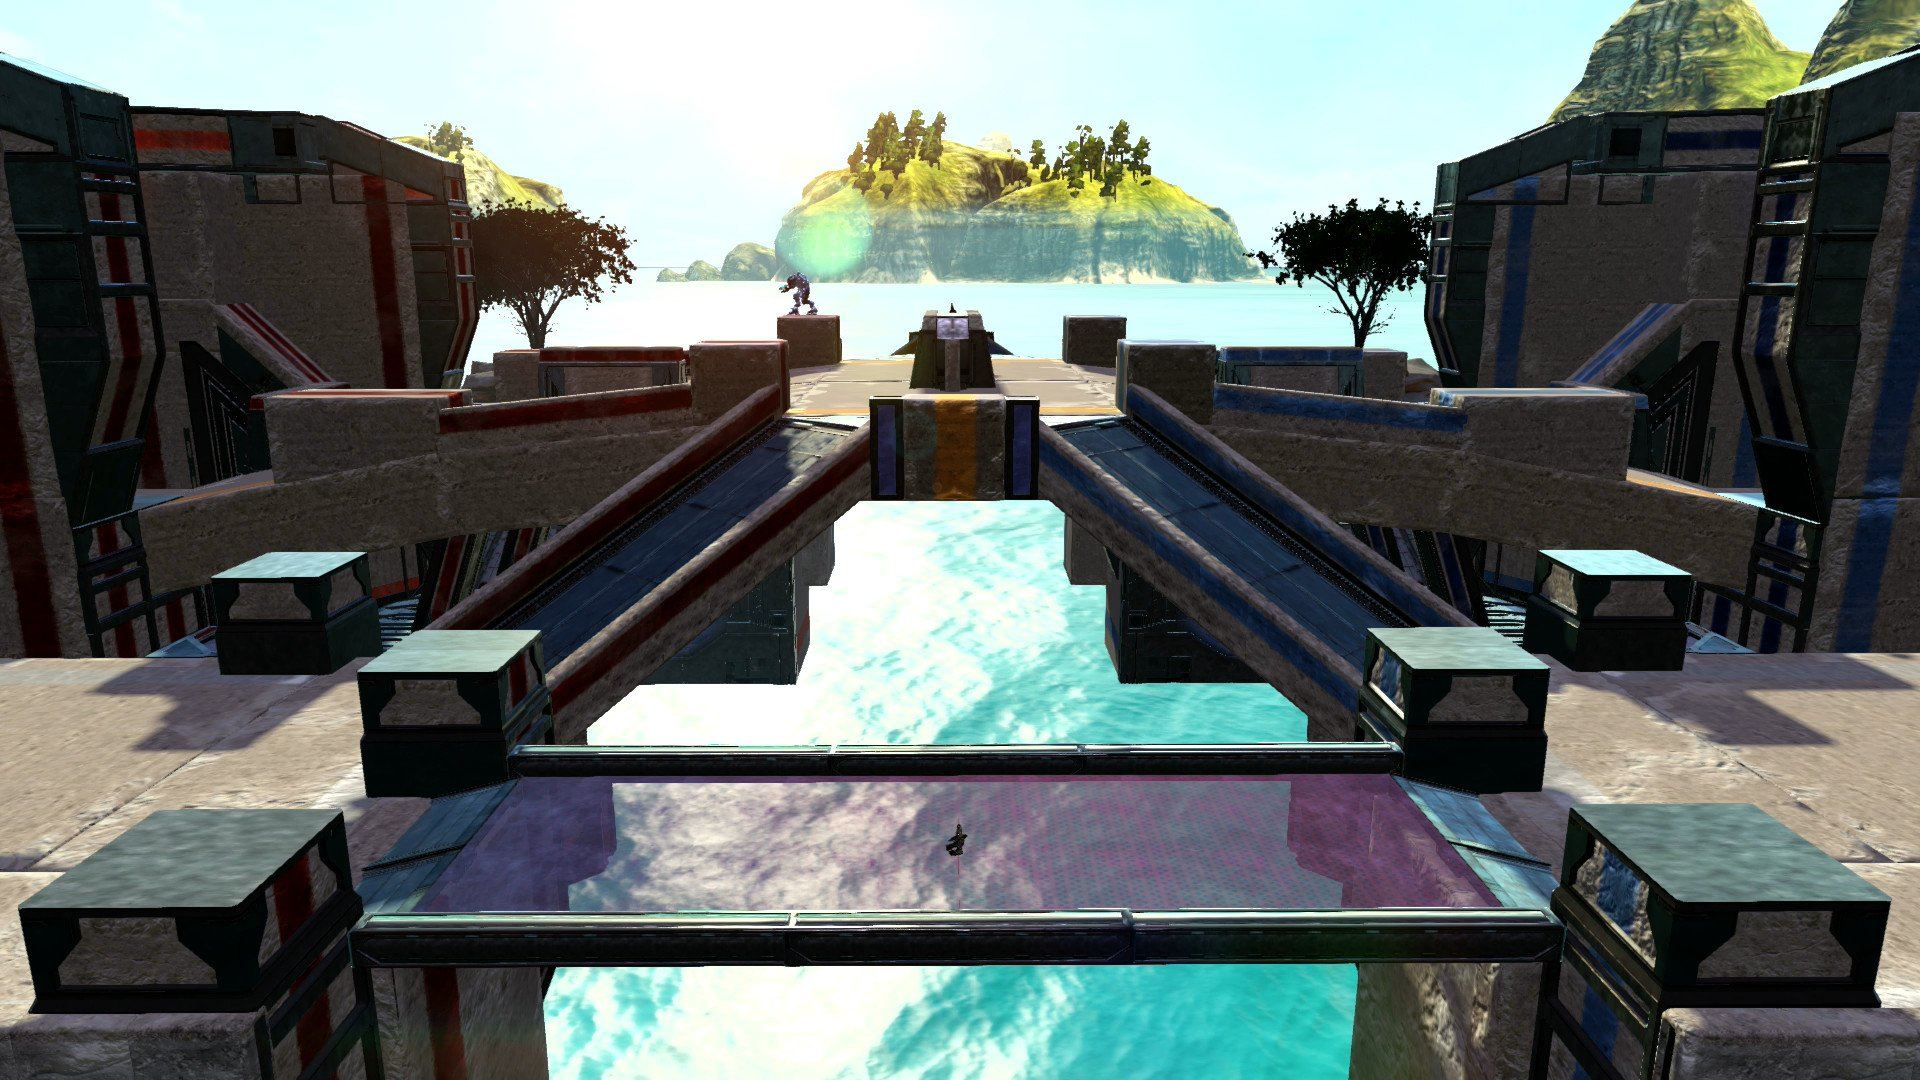 Halo 4 community maps in matchmaking